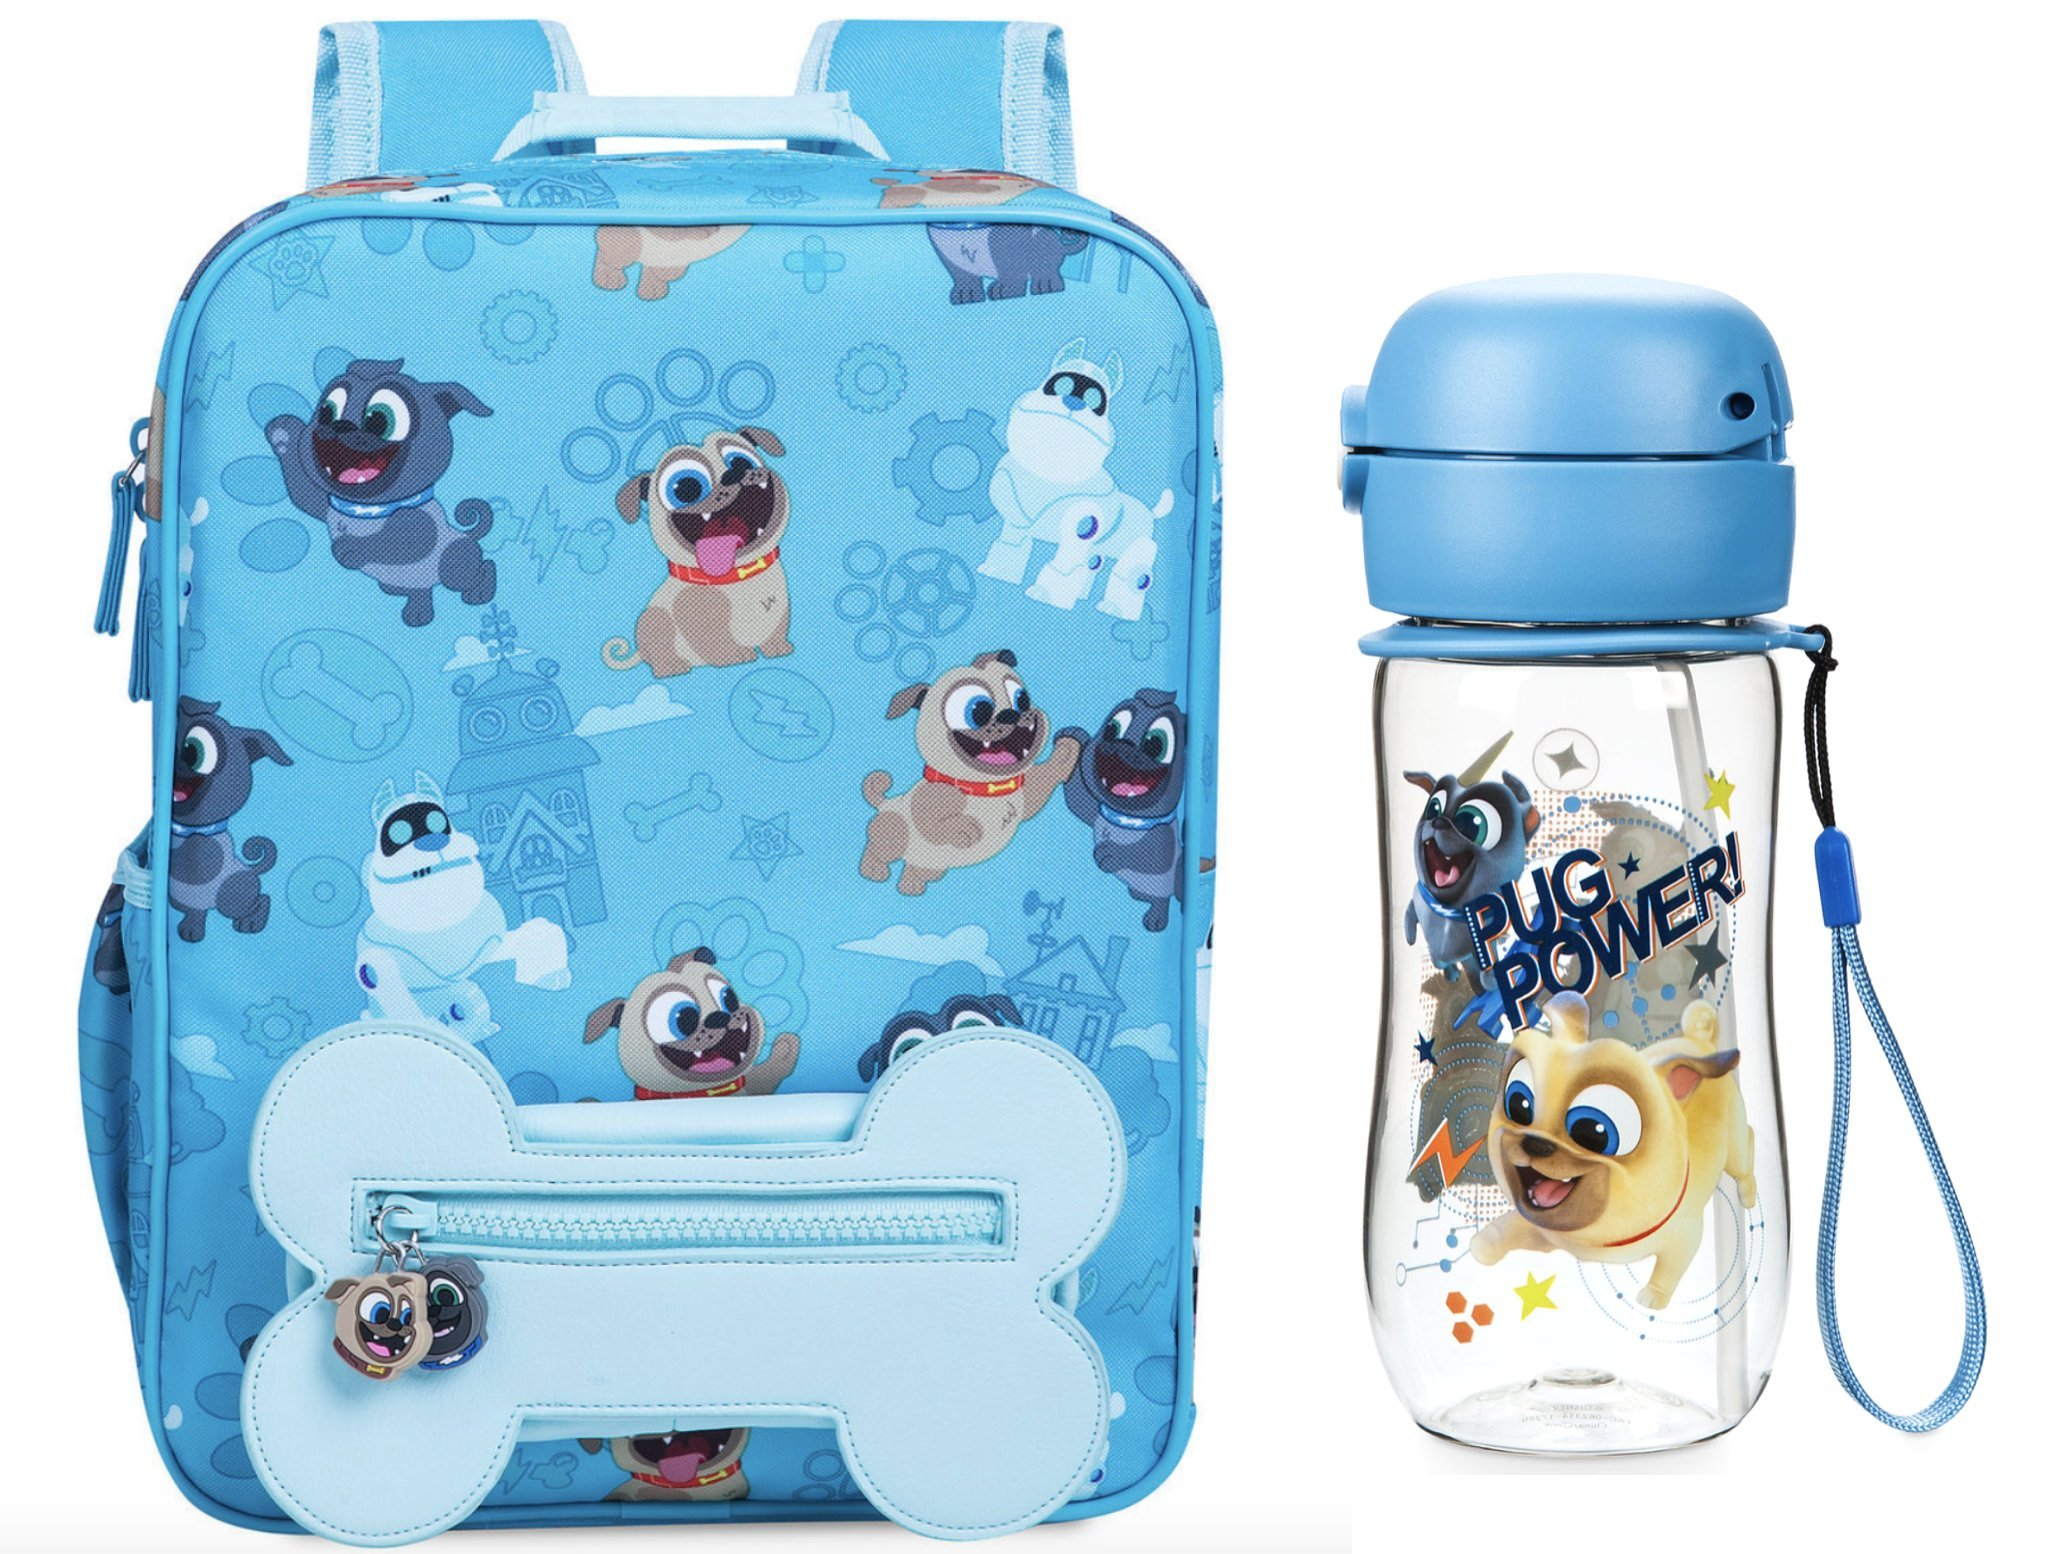 Puppy Dog Pals 12'' Backpack + Matching Flip Top Water Bottle with Built-In Straw